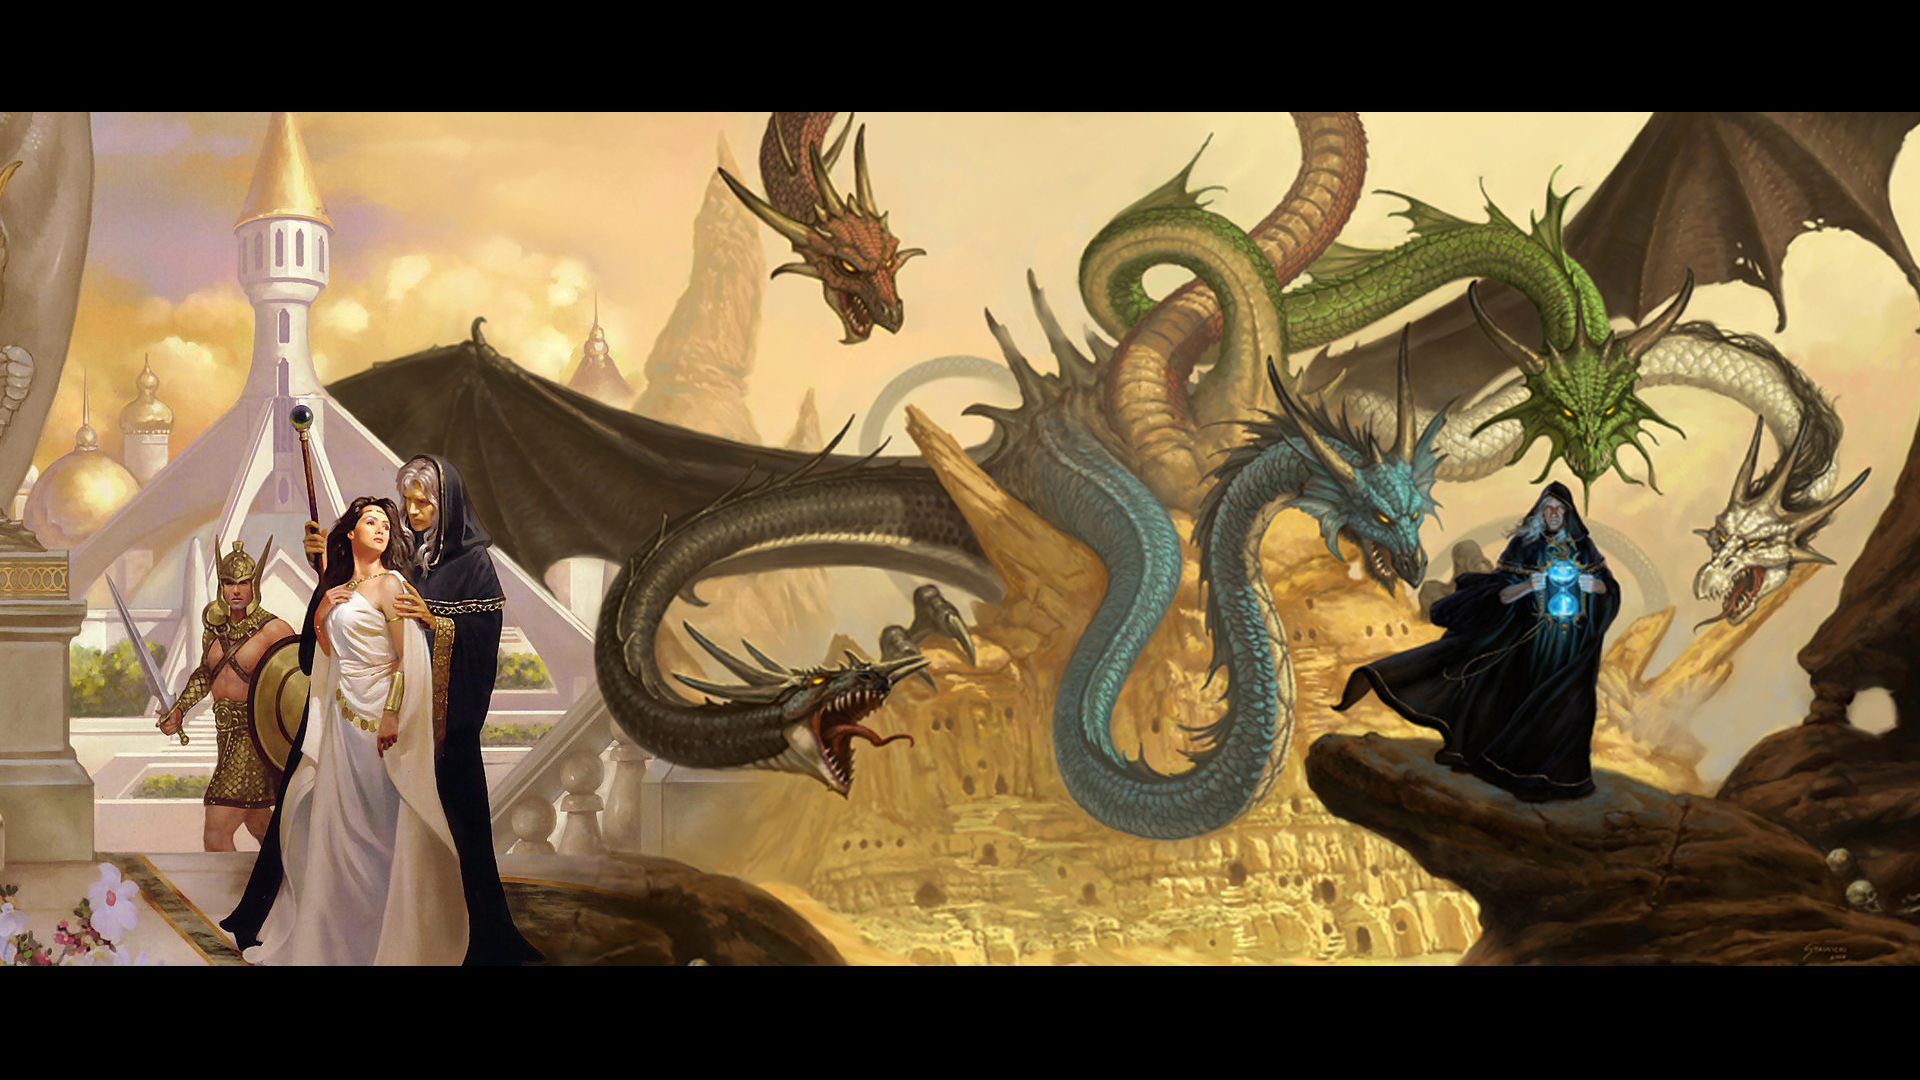 Raistlin and Crysania by cryptic conviction 1920x1080